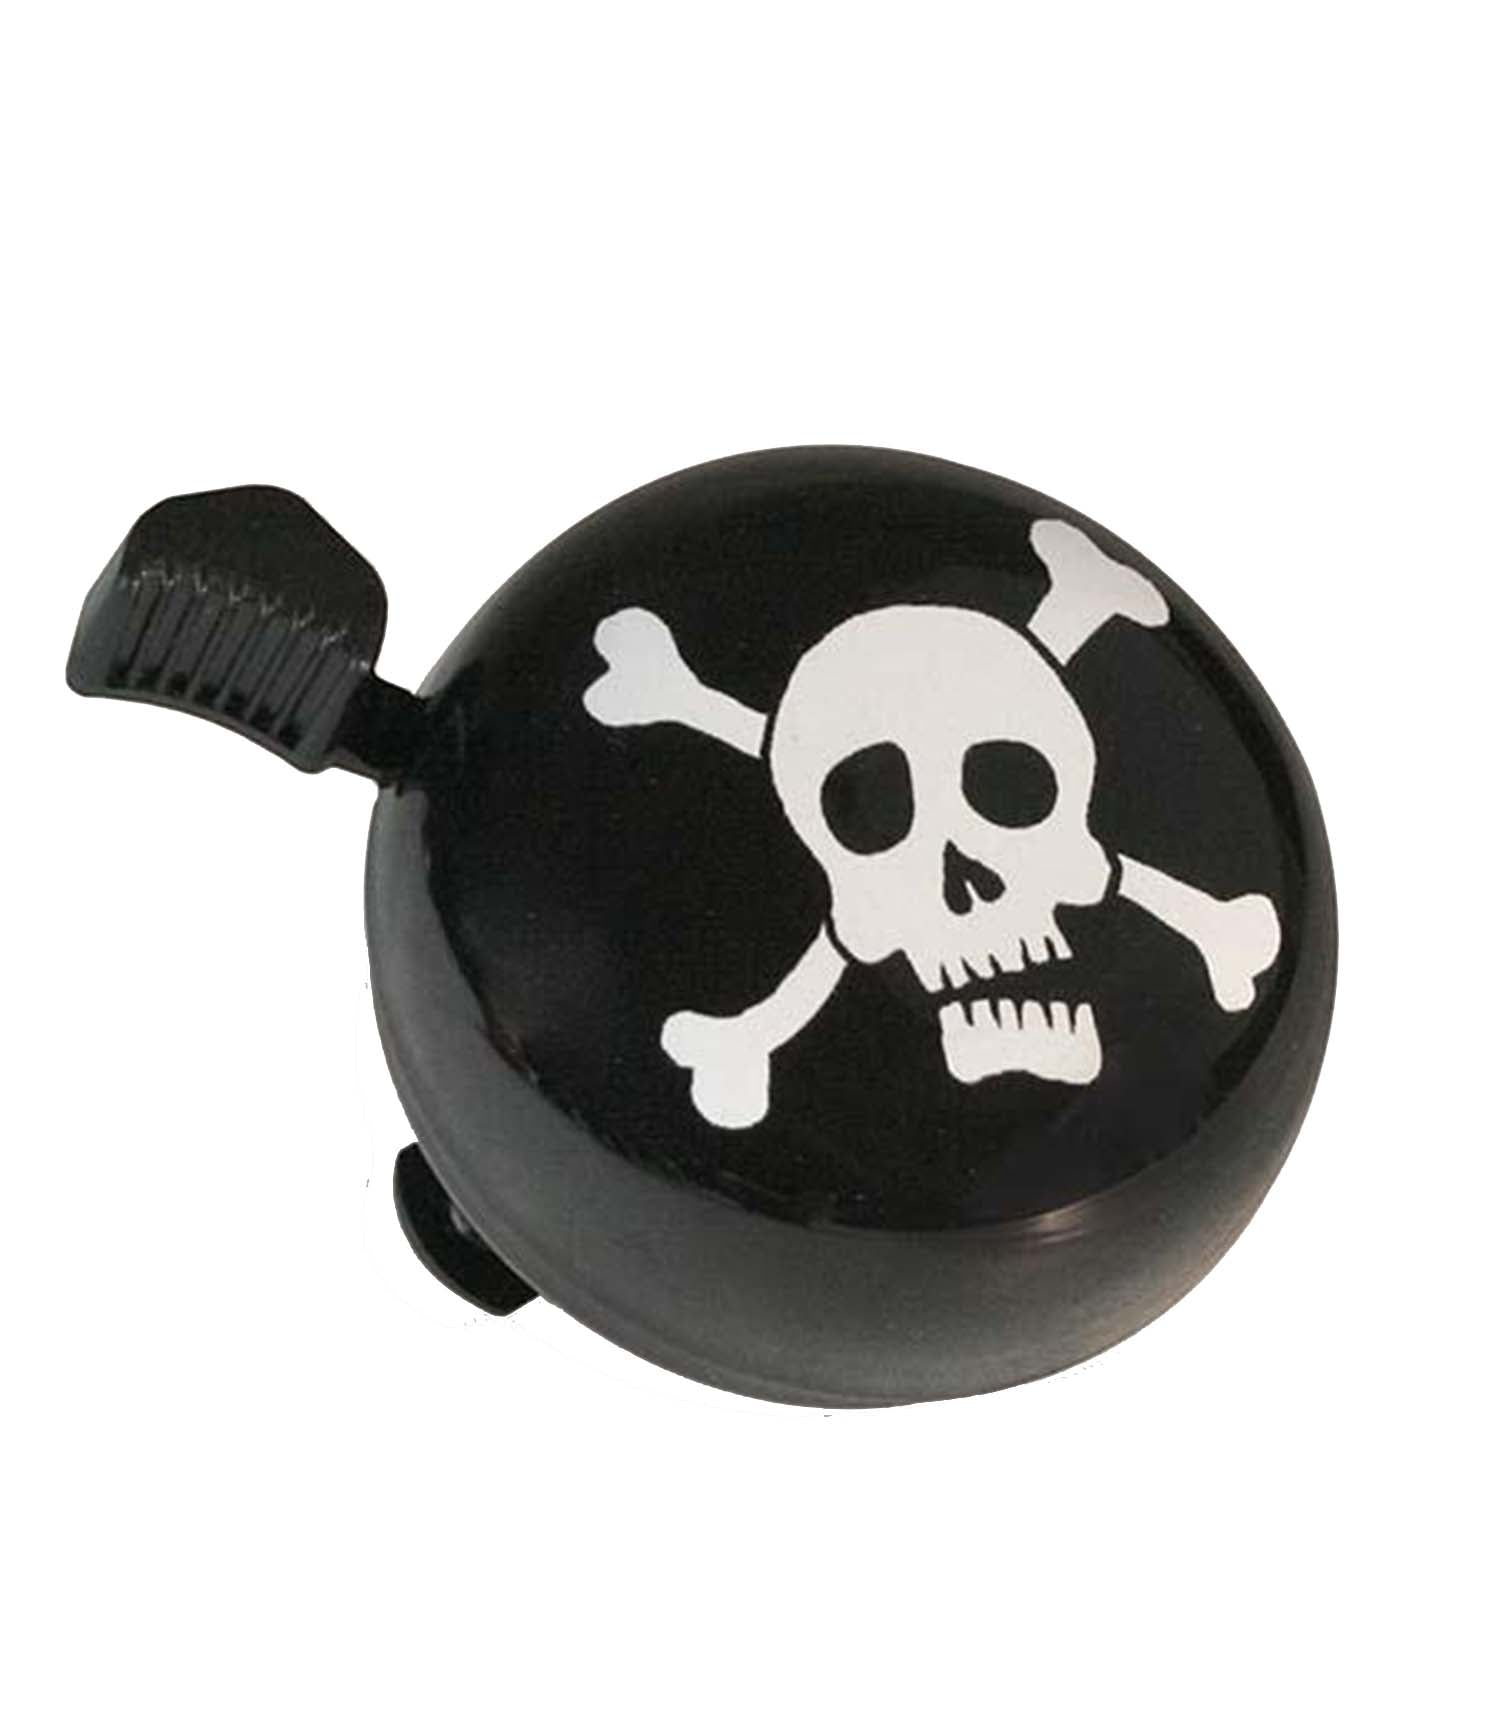 The PIRATE Bicycle Bell